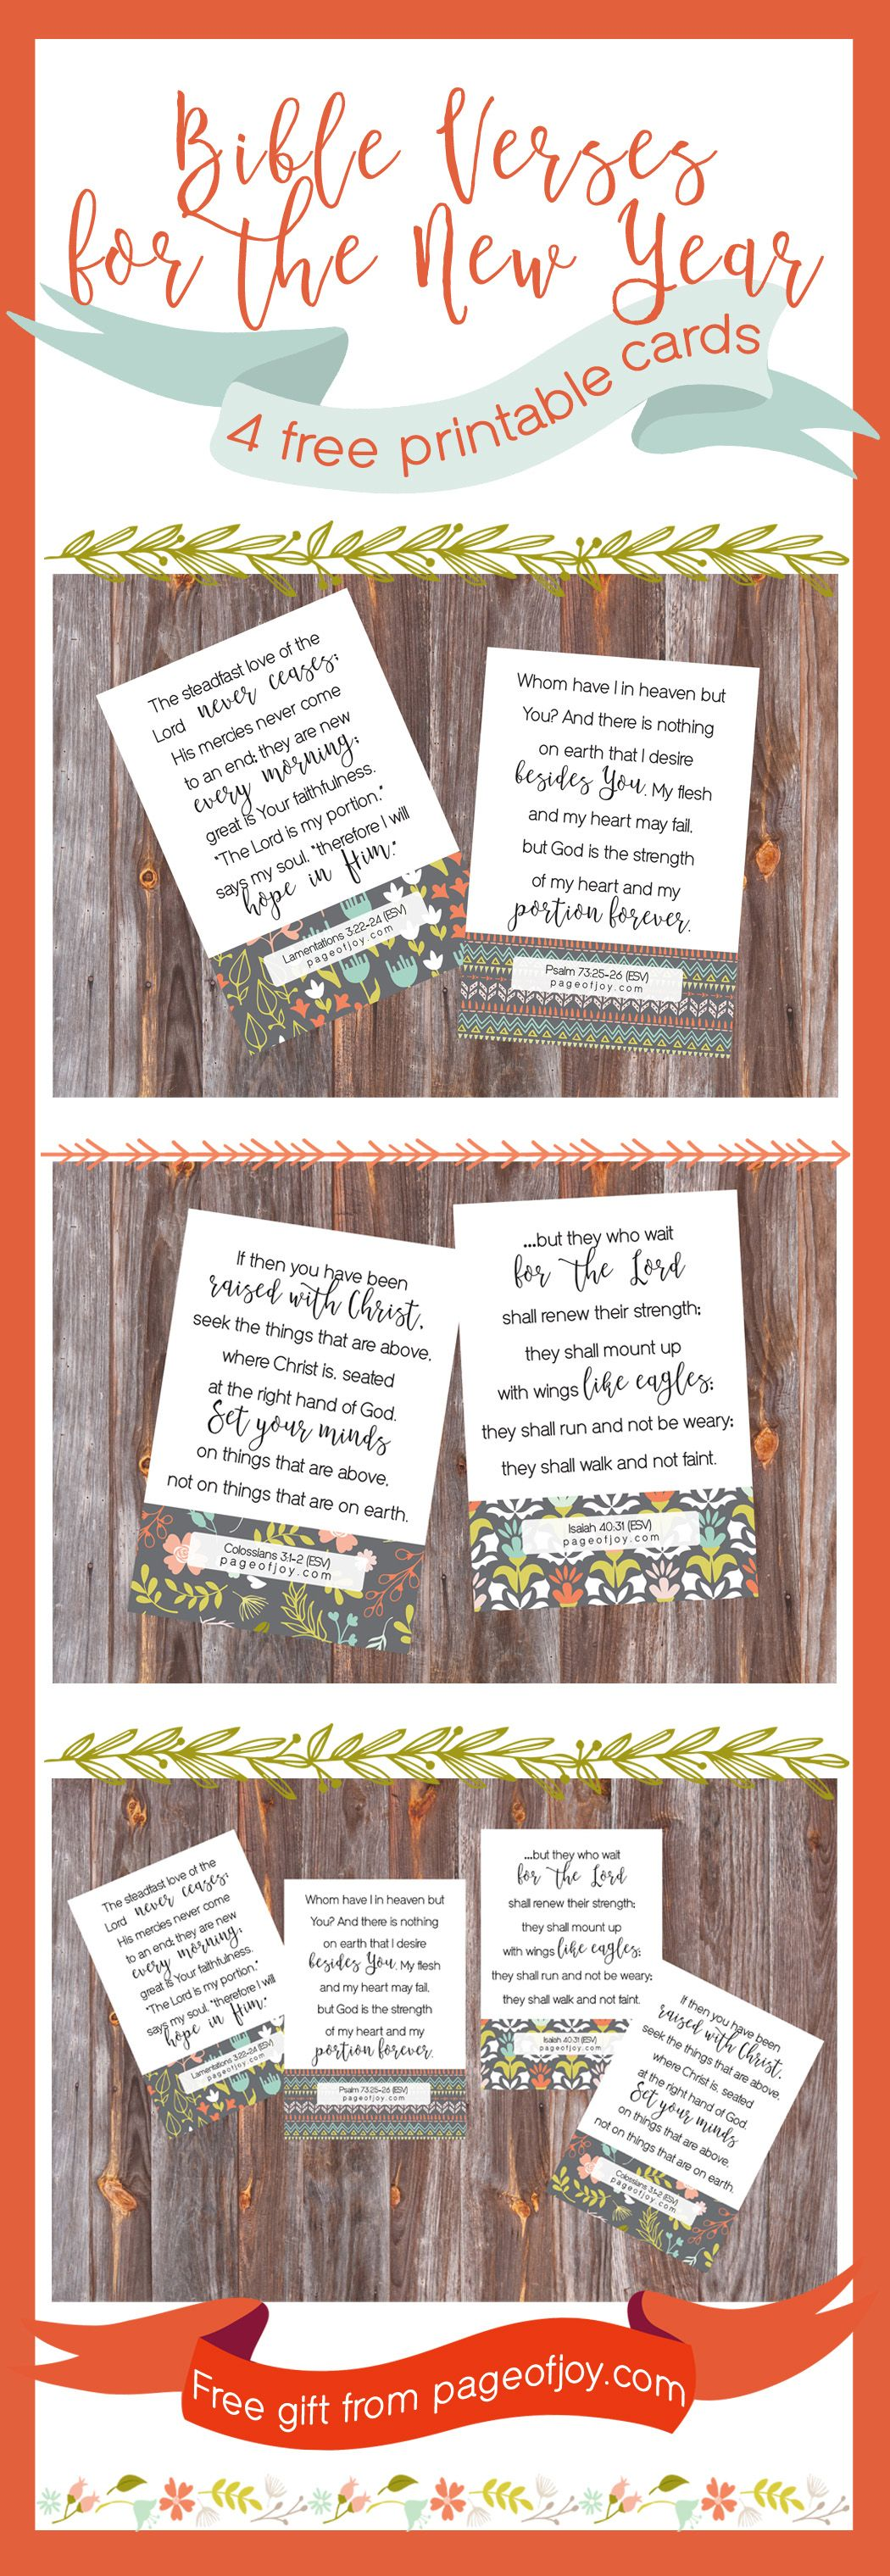 Gorgeous Free Bible Verse Printable Cards Will Inspire Your New